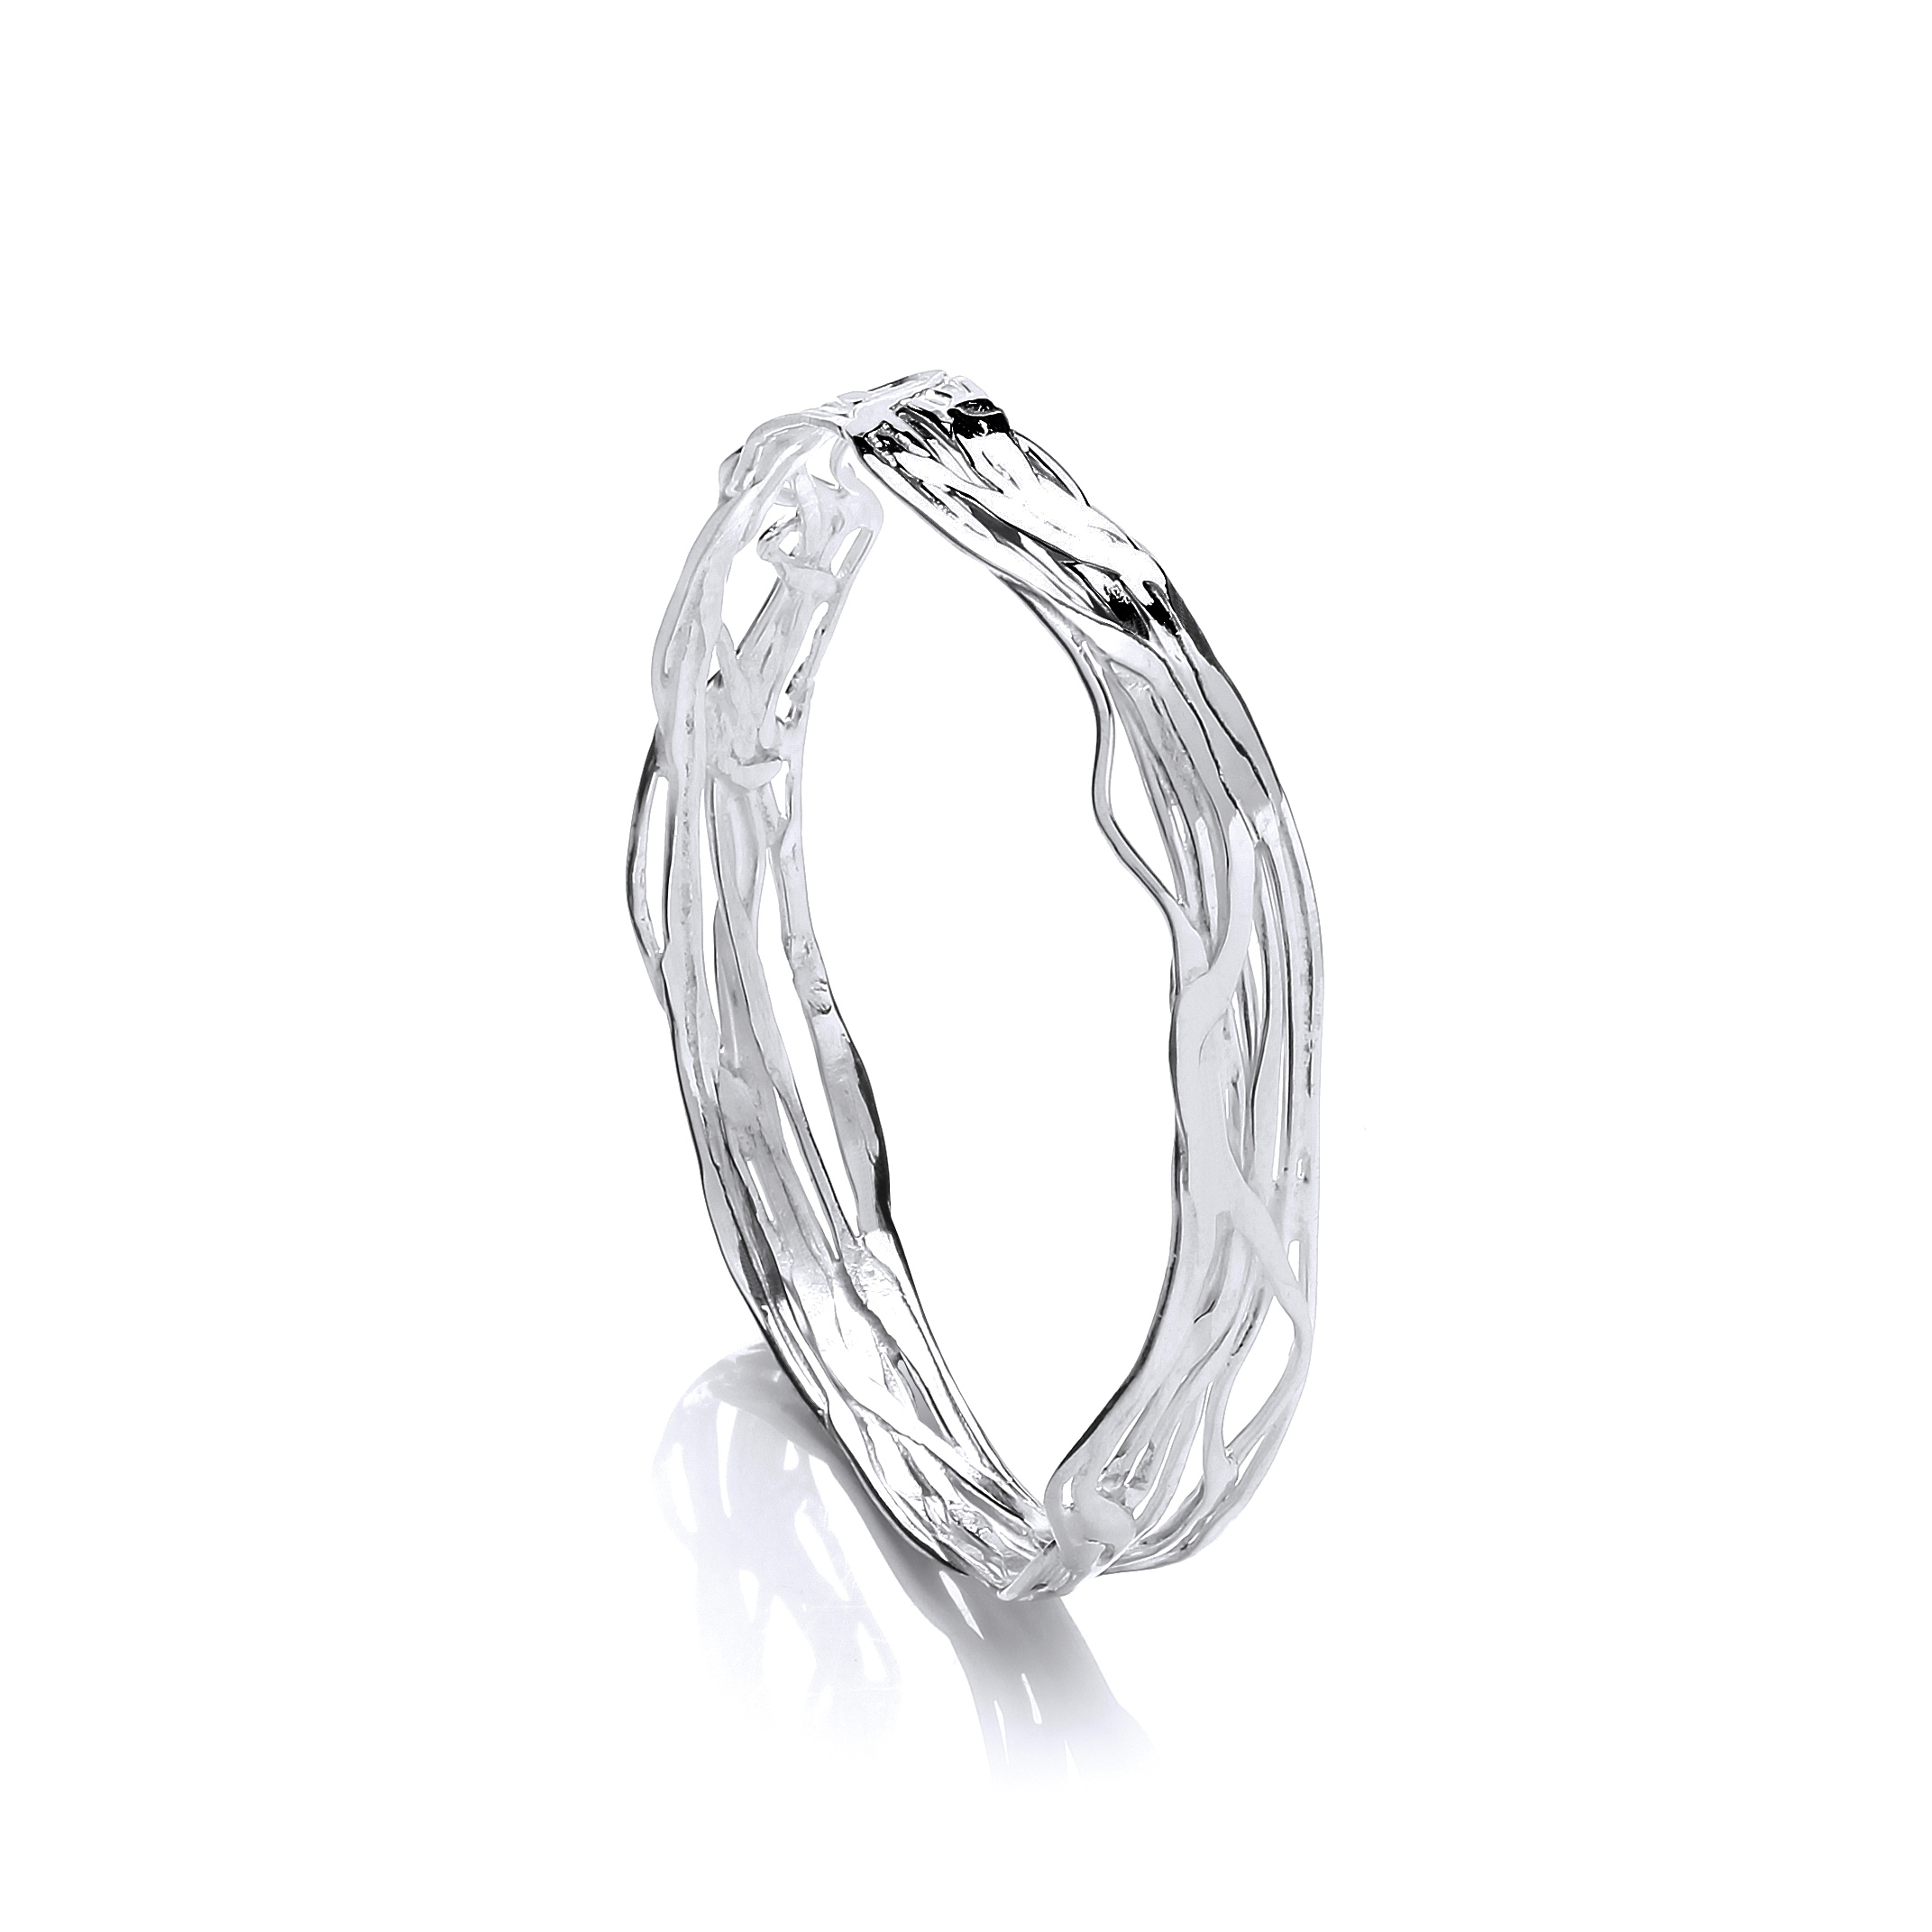 Sterling silver organice texture bangle